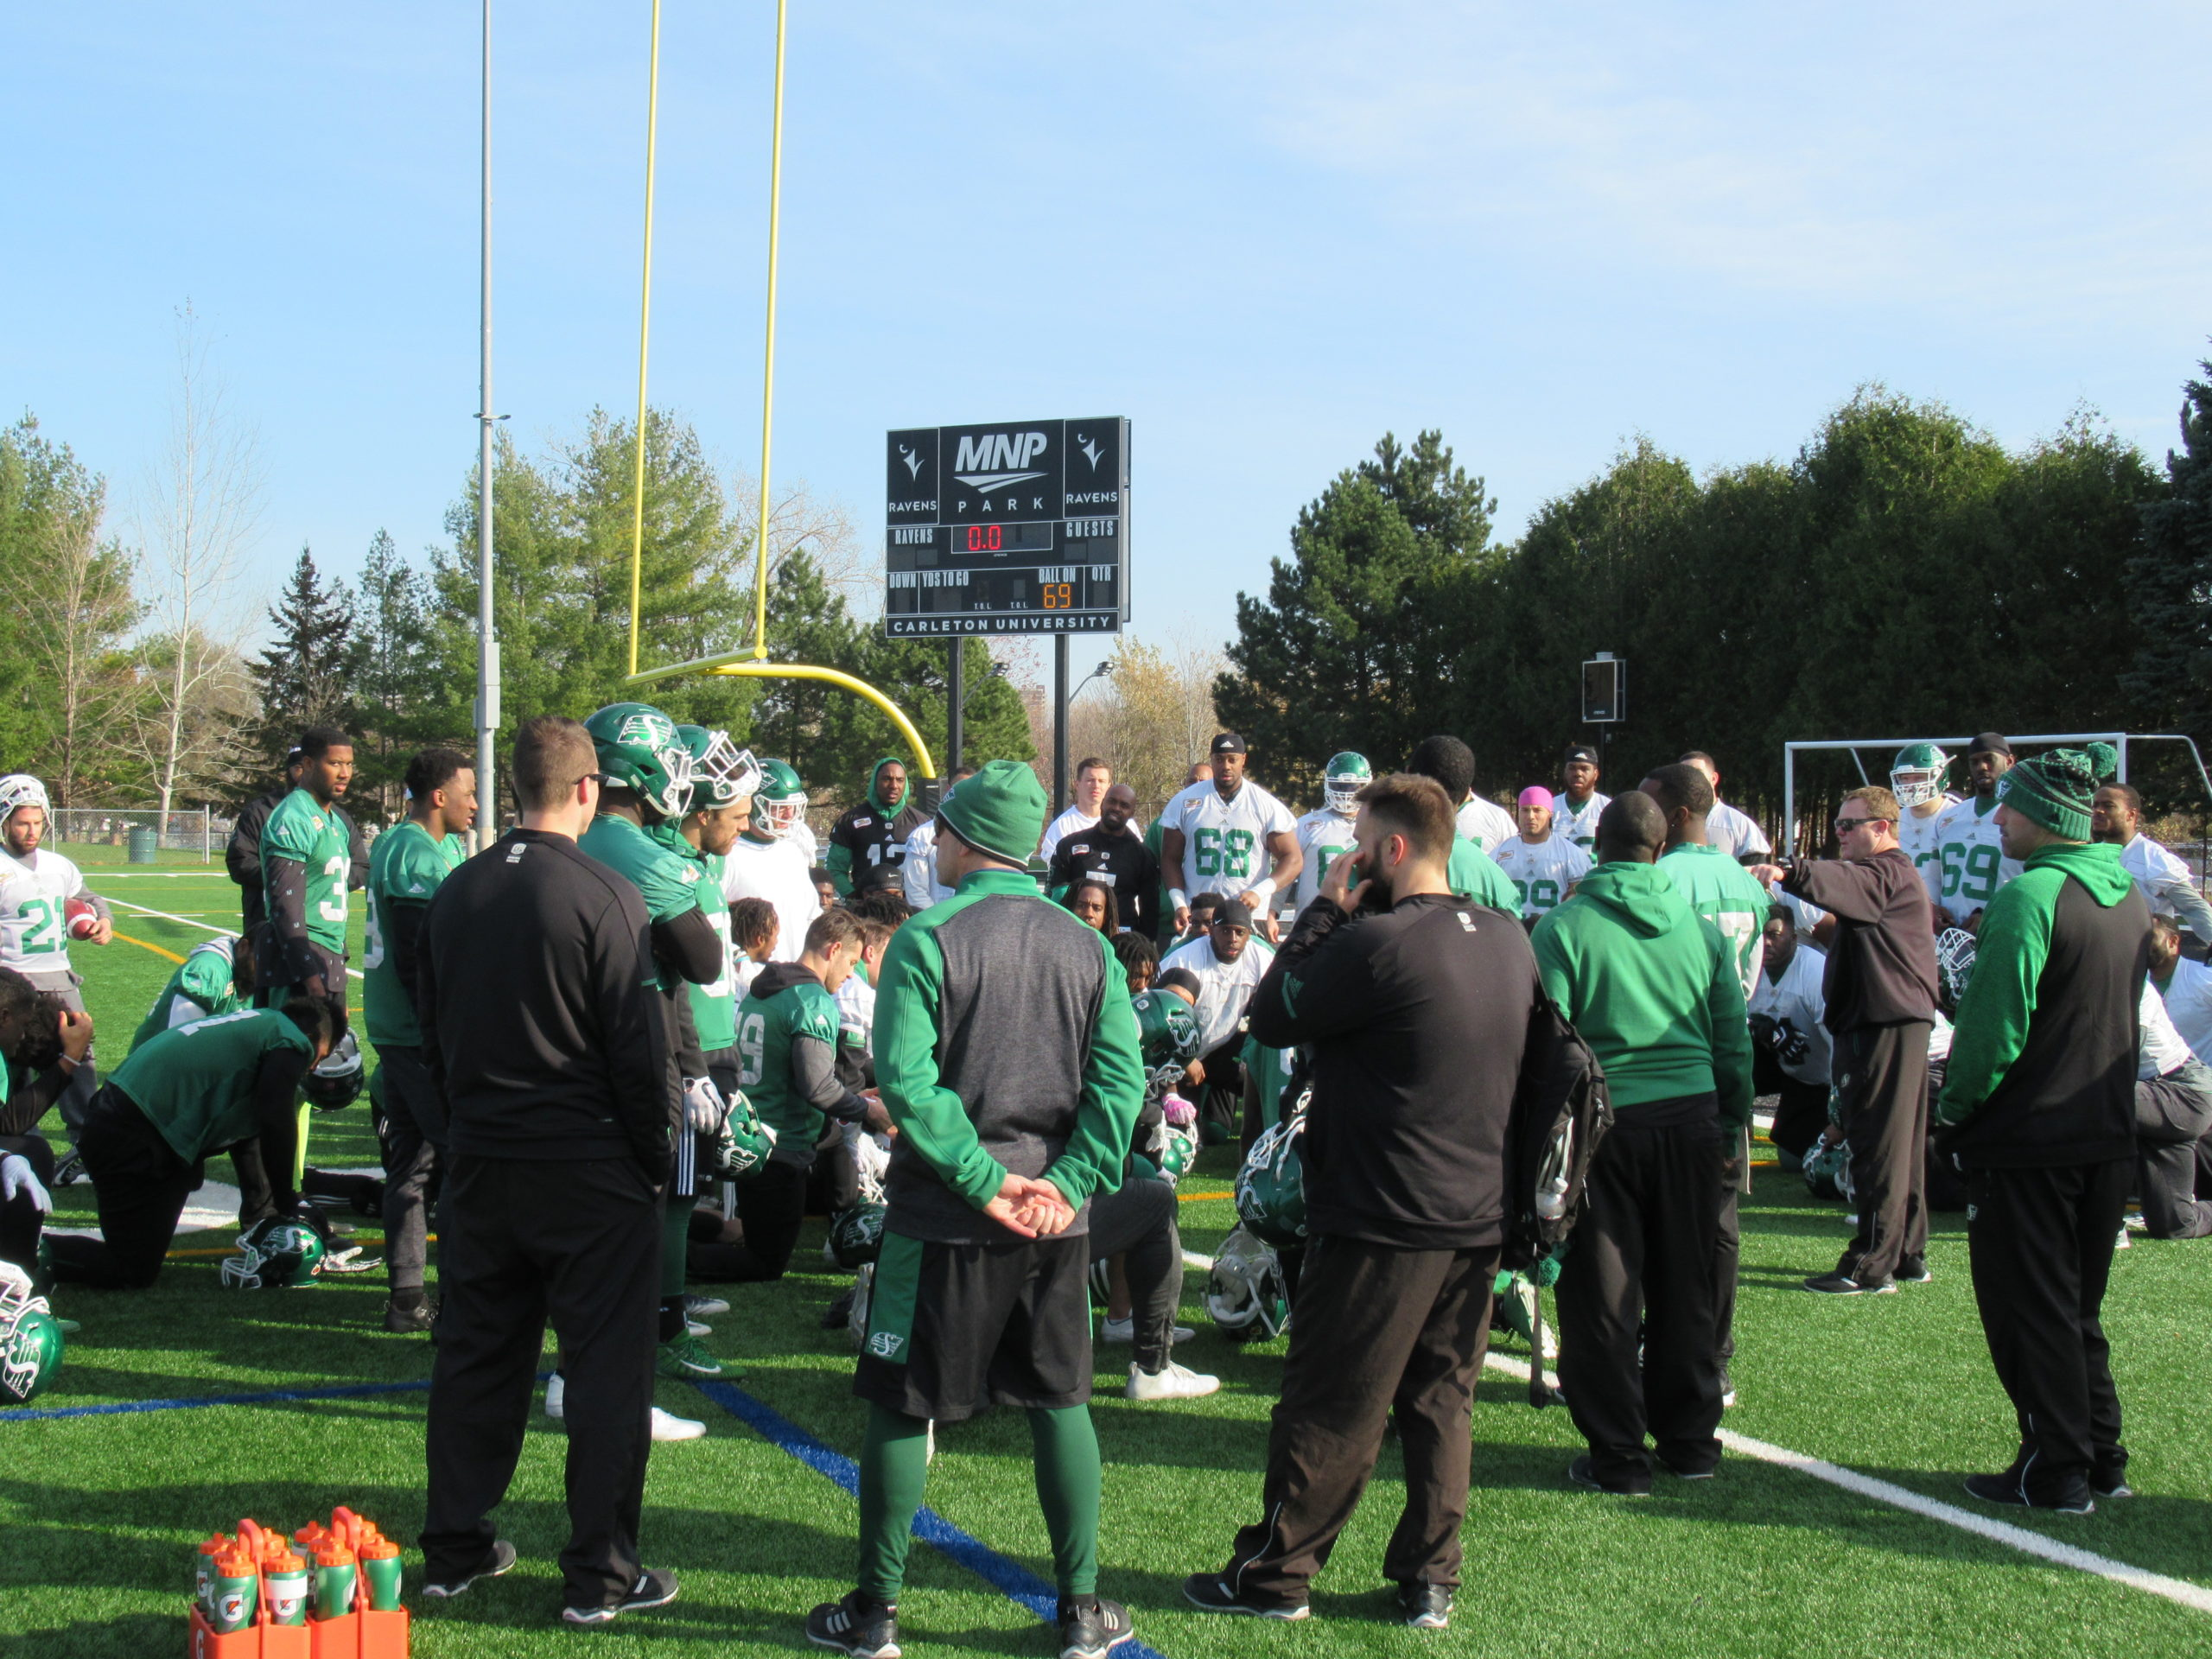 Brendon Labatte practices as Riders start getting ready for Sunday's CFL East Final